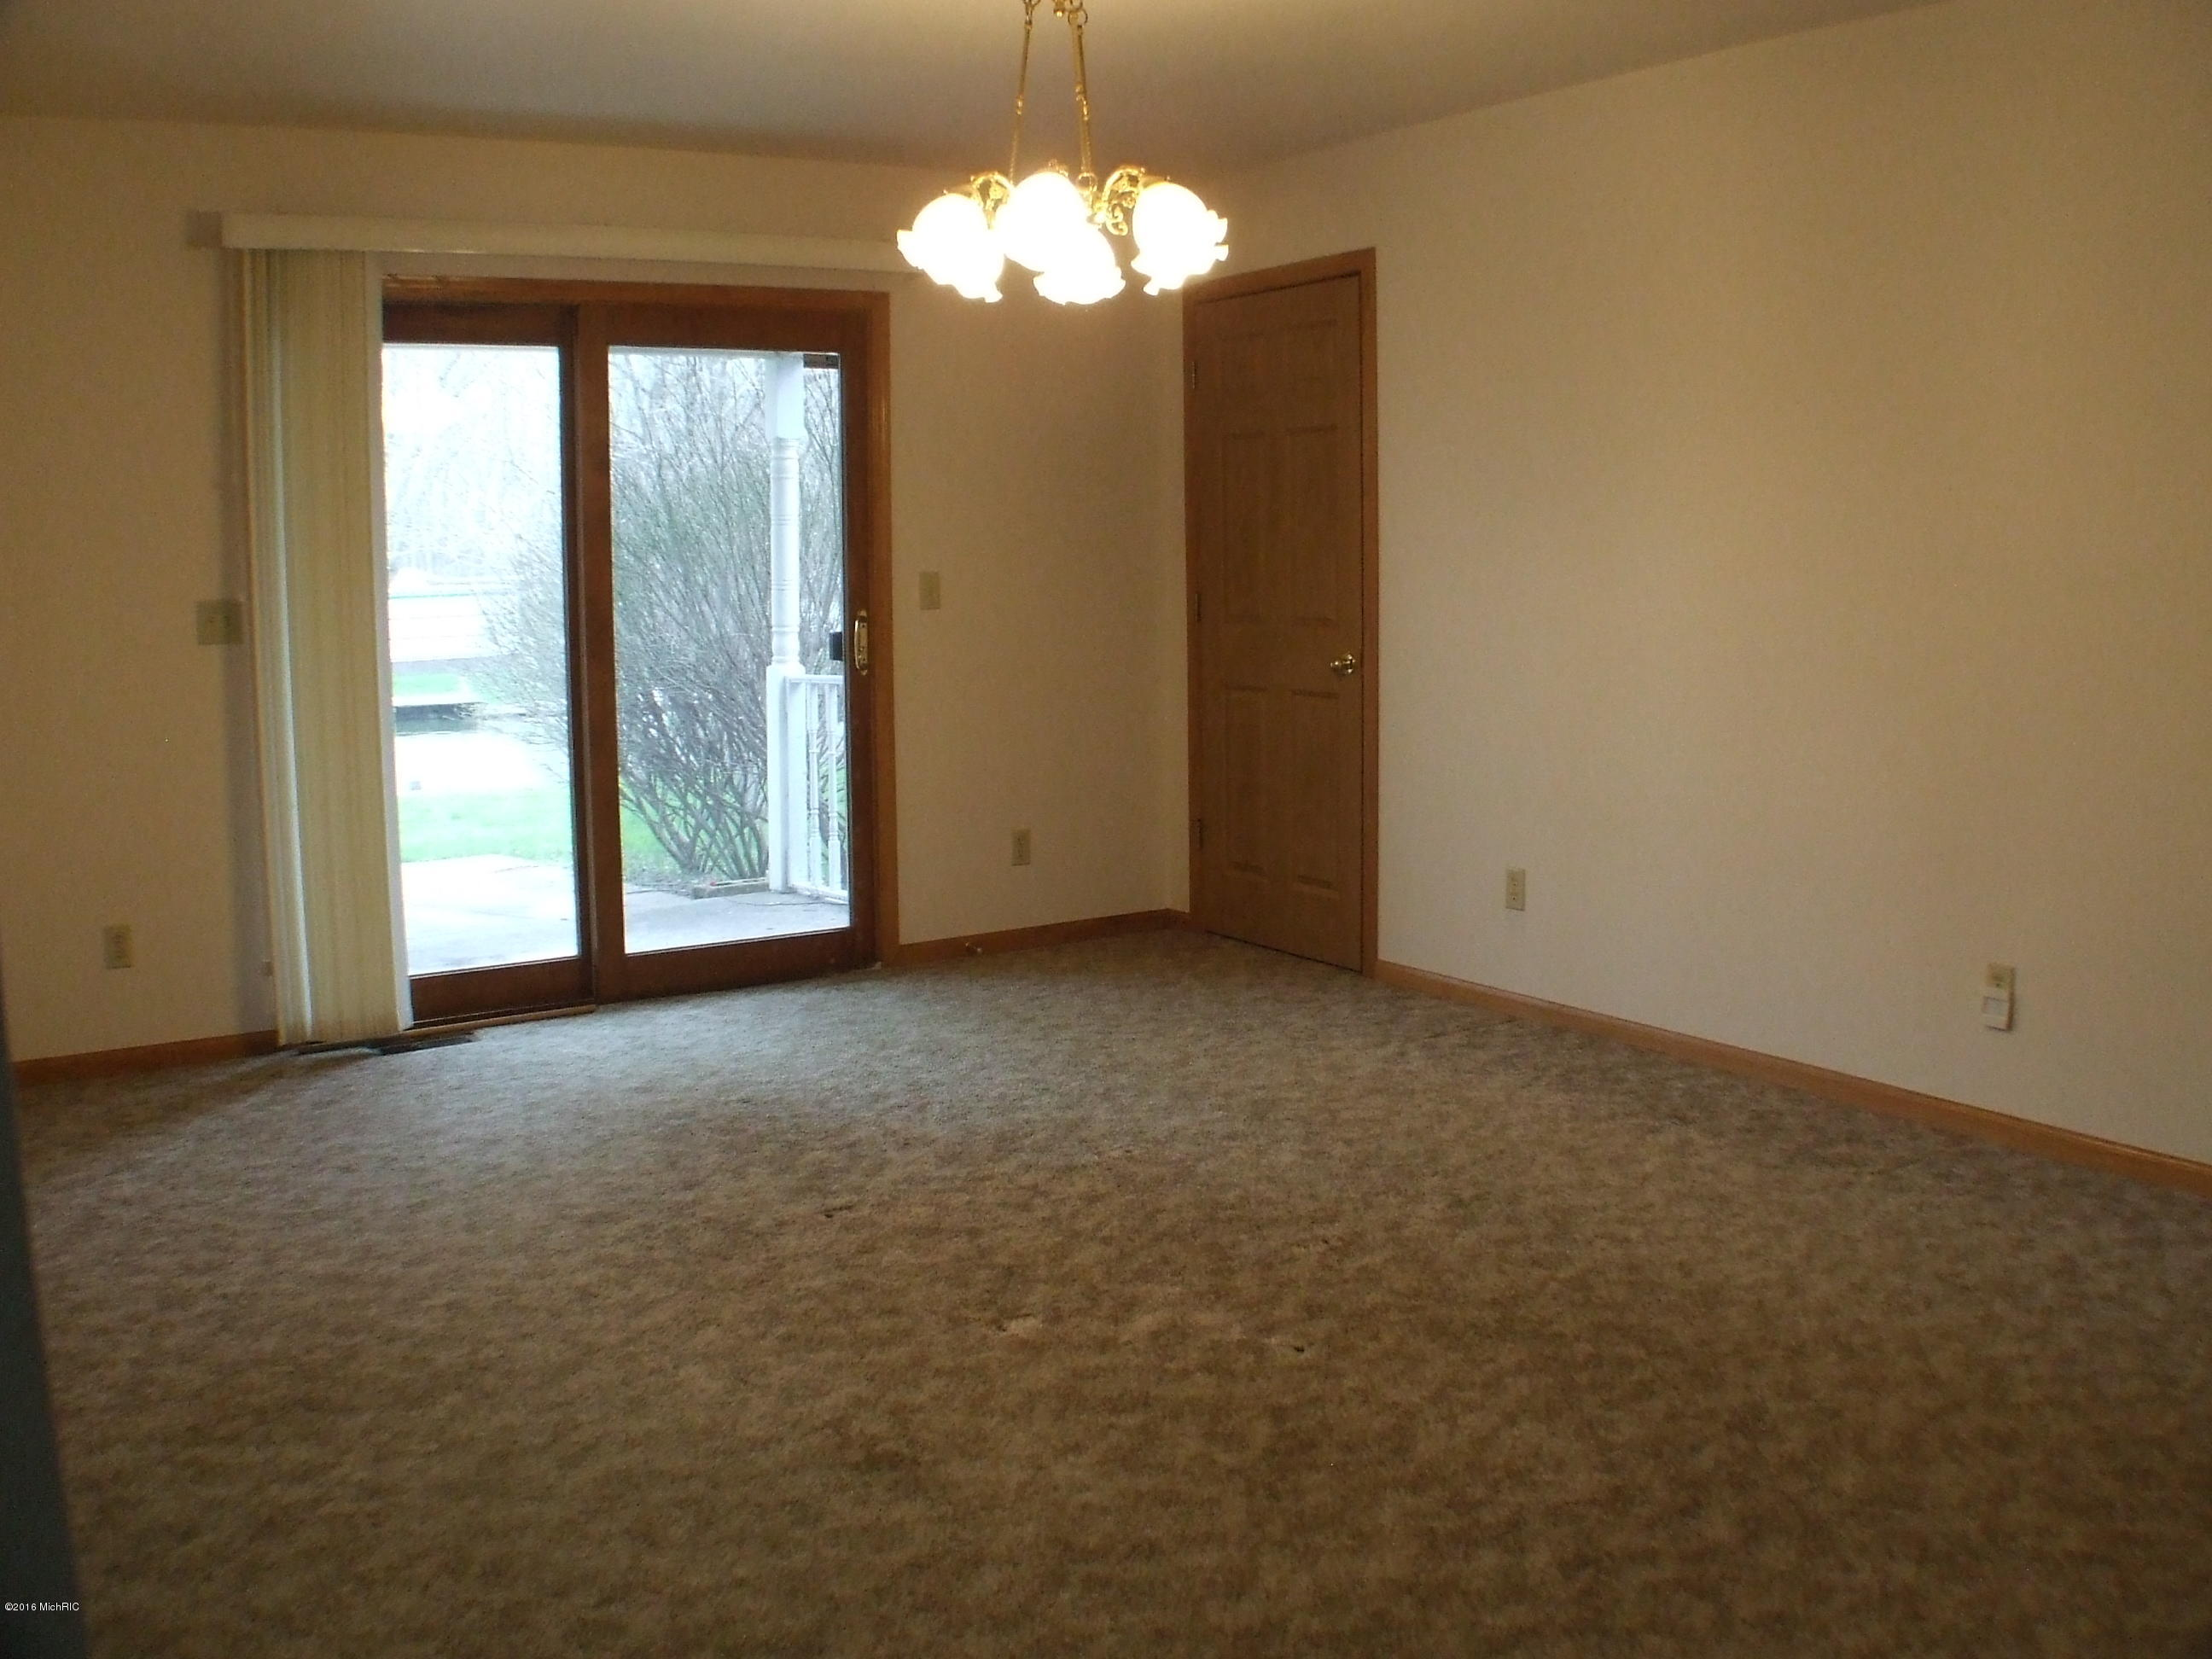 43460 Van Auken , Bangor, MI 49013 Photo 6